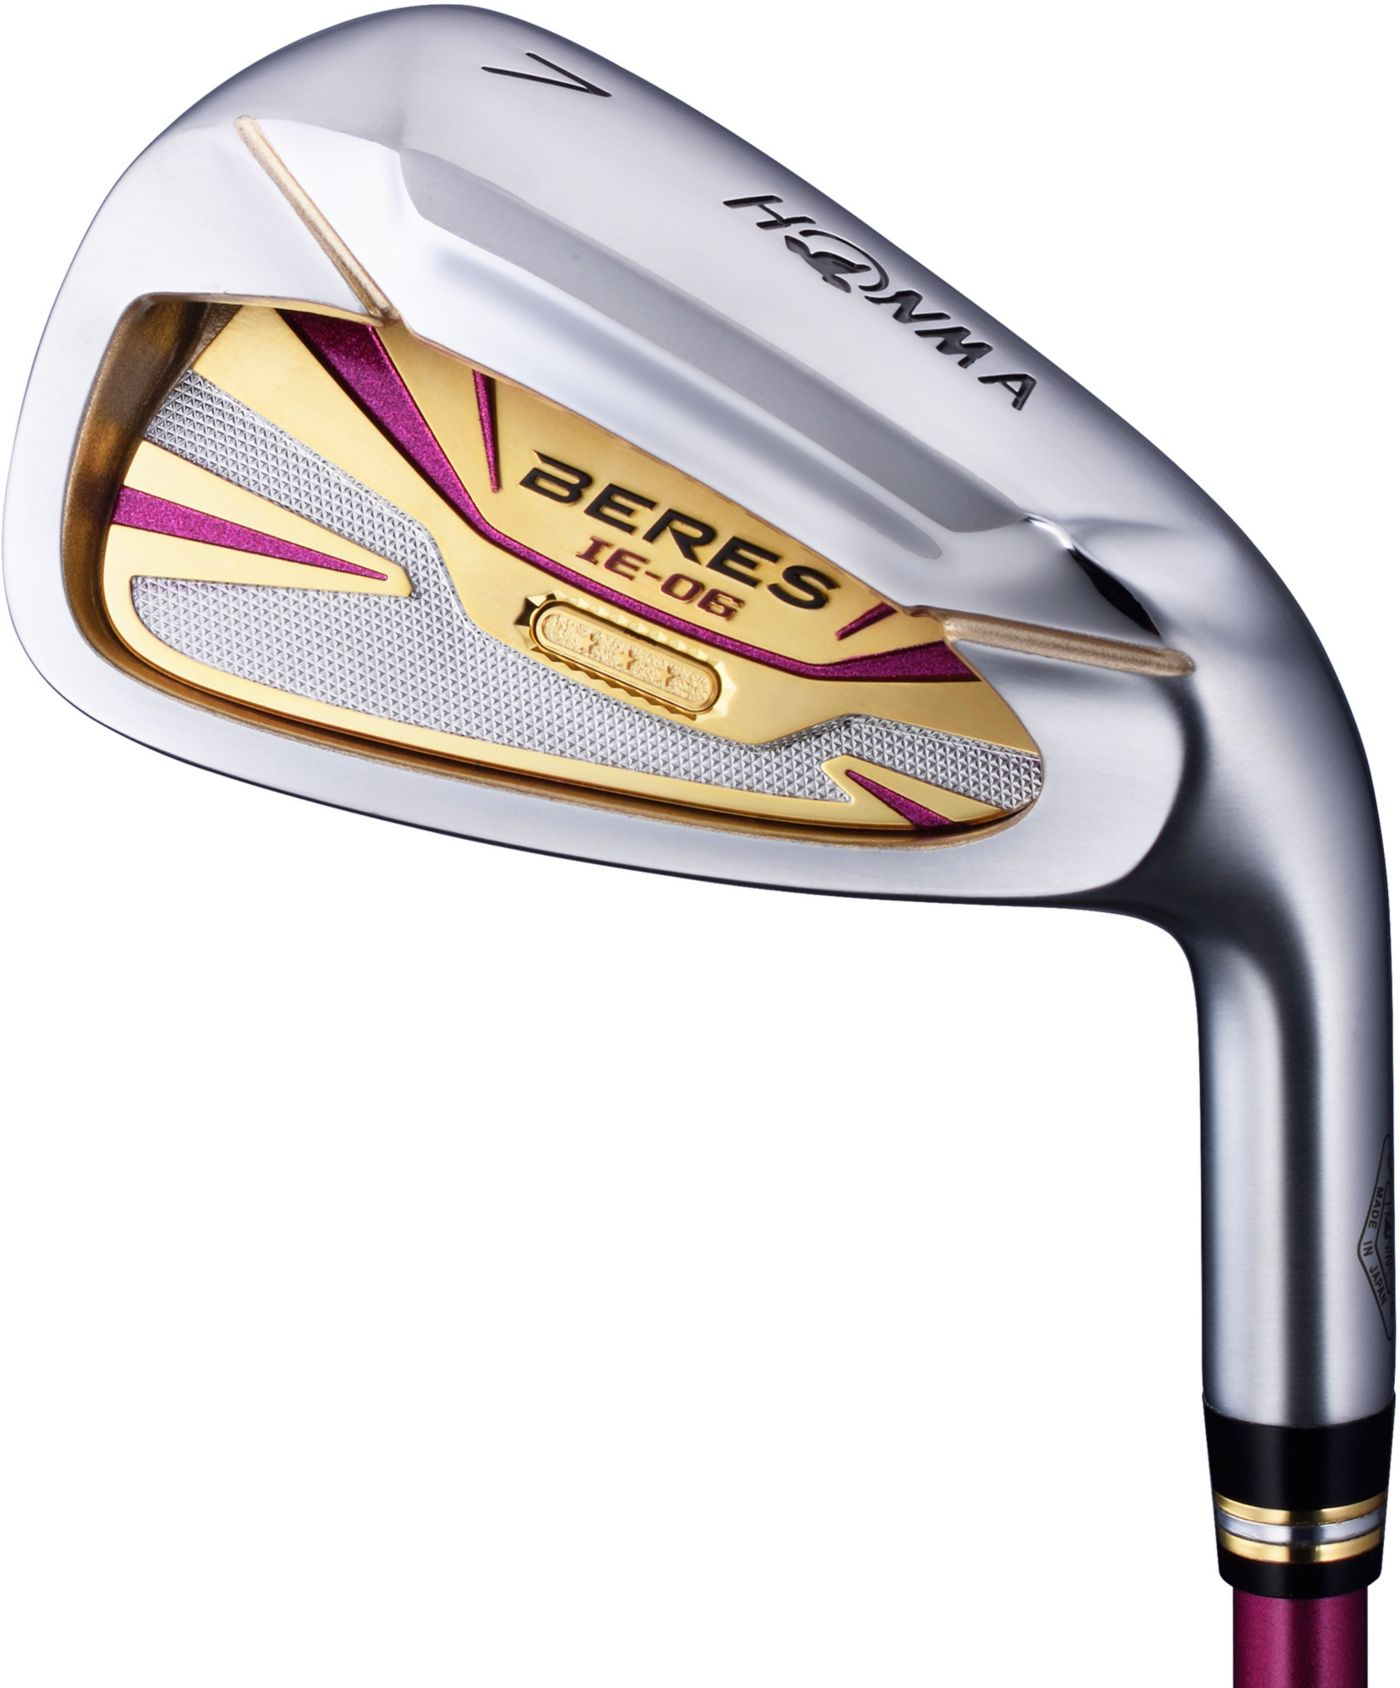 Honma Women's Beres IE-06 3-Star Irons – (Graphite)